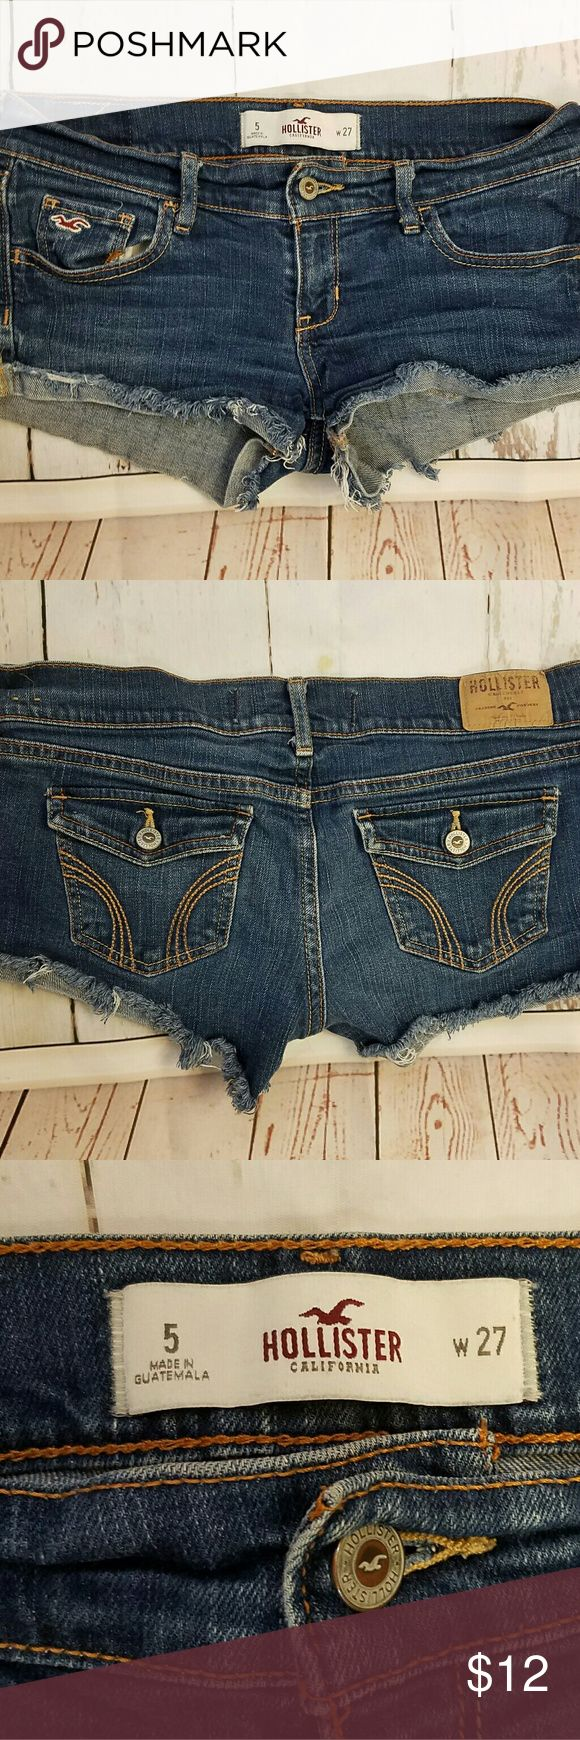 Hollister size 5 denim jeans shorts distressed For sale or a pre-owned pair of Hollister denim shorts size 5 waist 27. In good condition with no stains. Thanks for looking. Feel free to make an offer or a bundle, items ship within 1 business day. Bin D. Hollister Shorts Jean Shorts